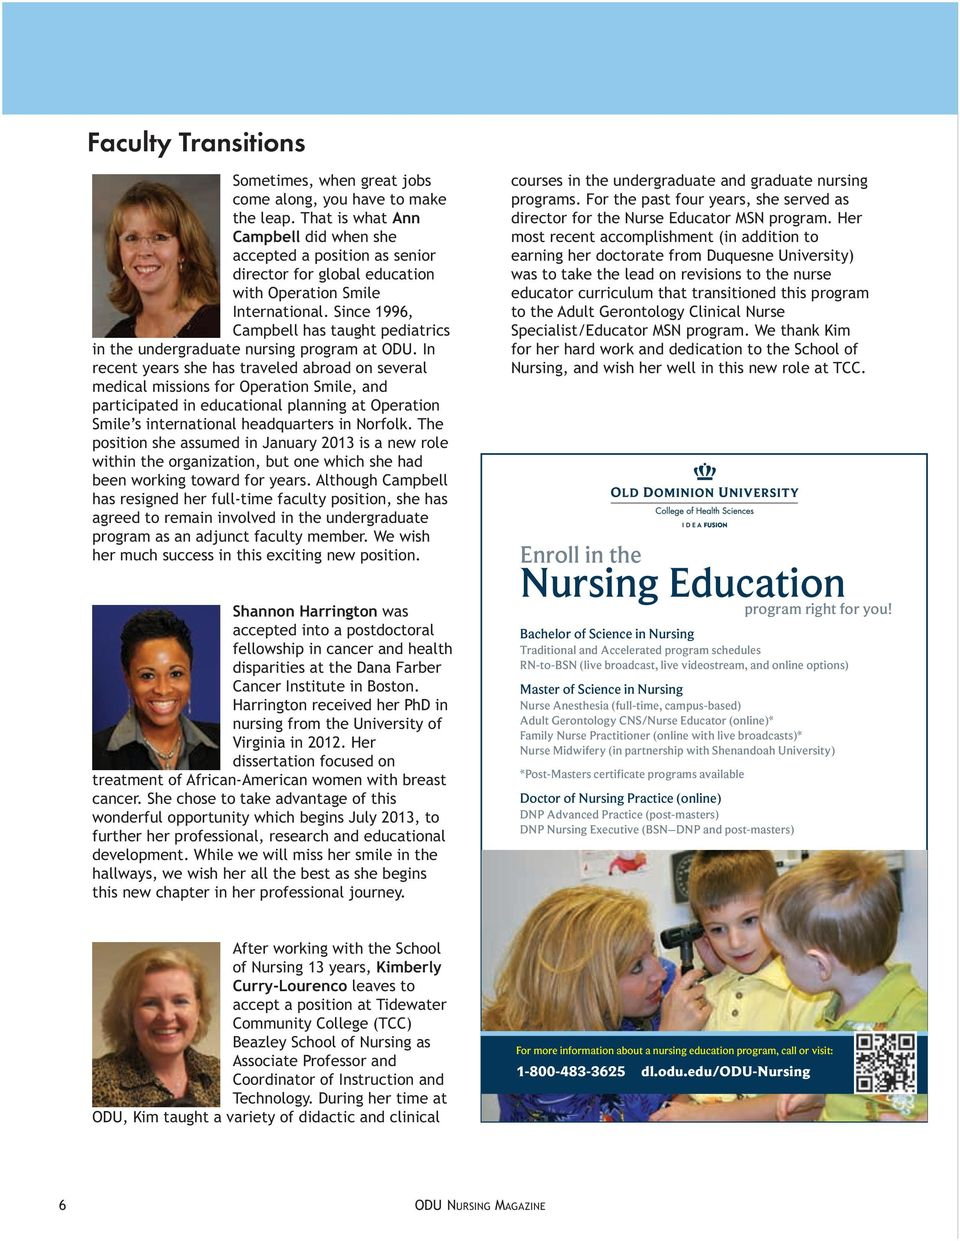 Since 1996, Campbell has taught pediatrics in the undergraduate nursing program at ODU.